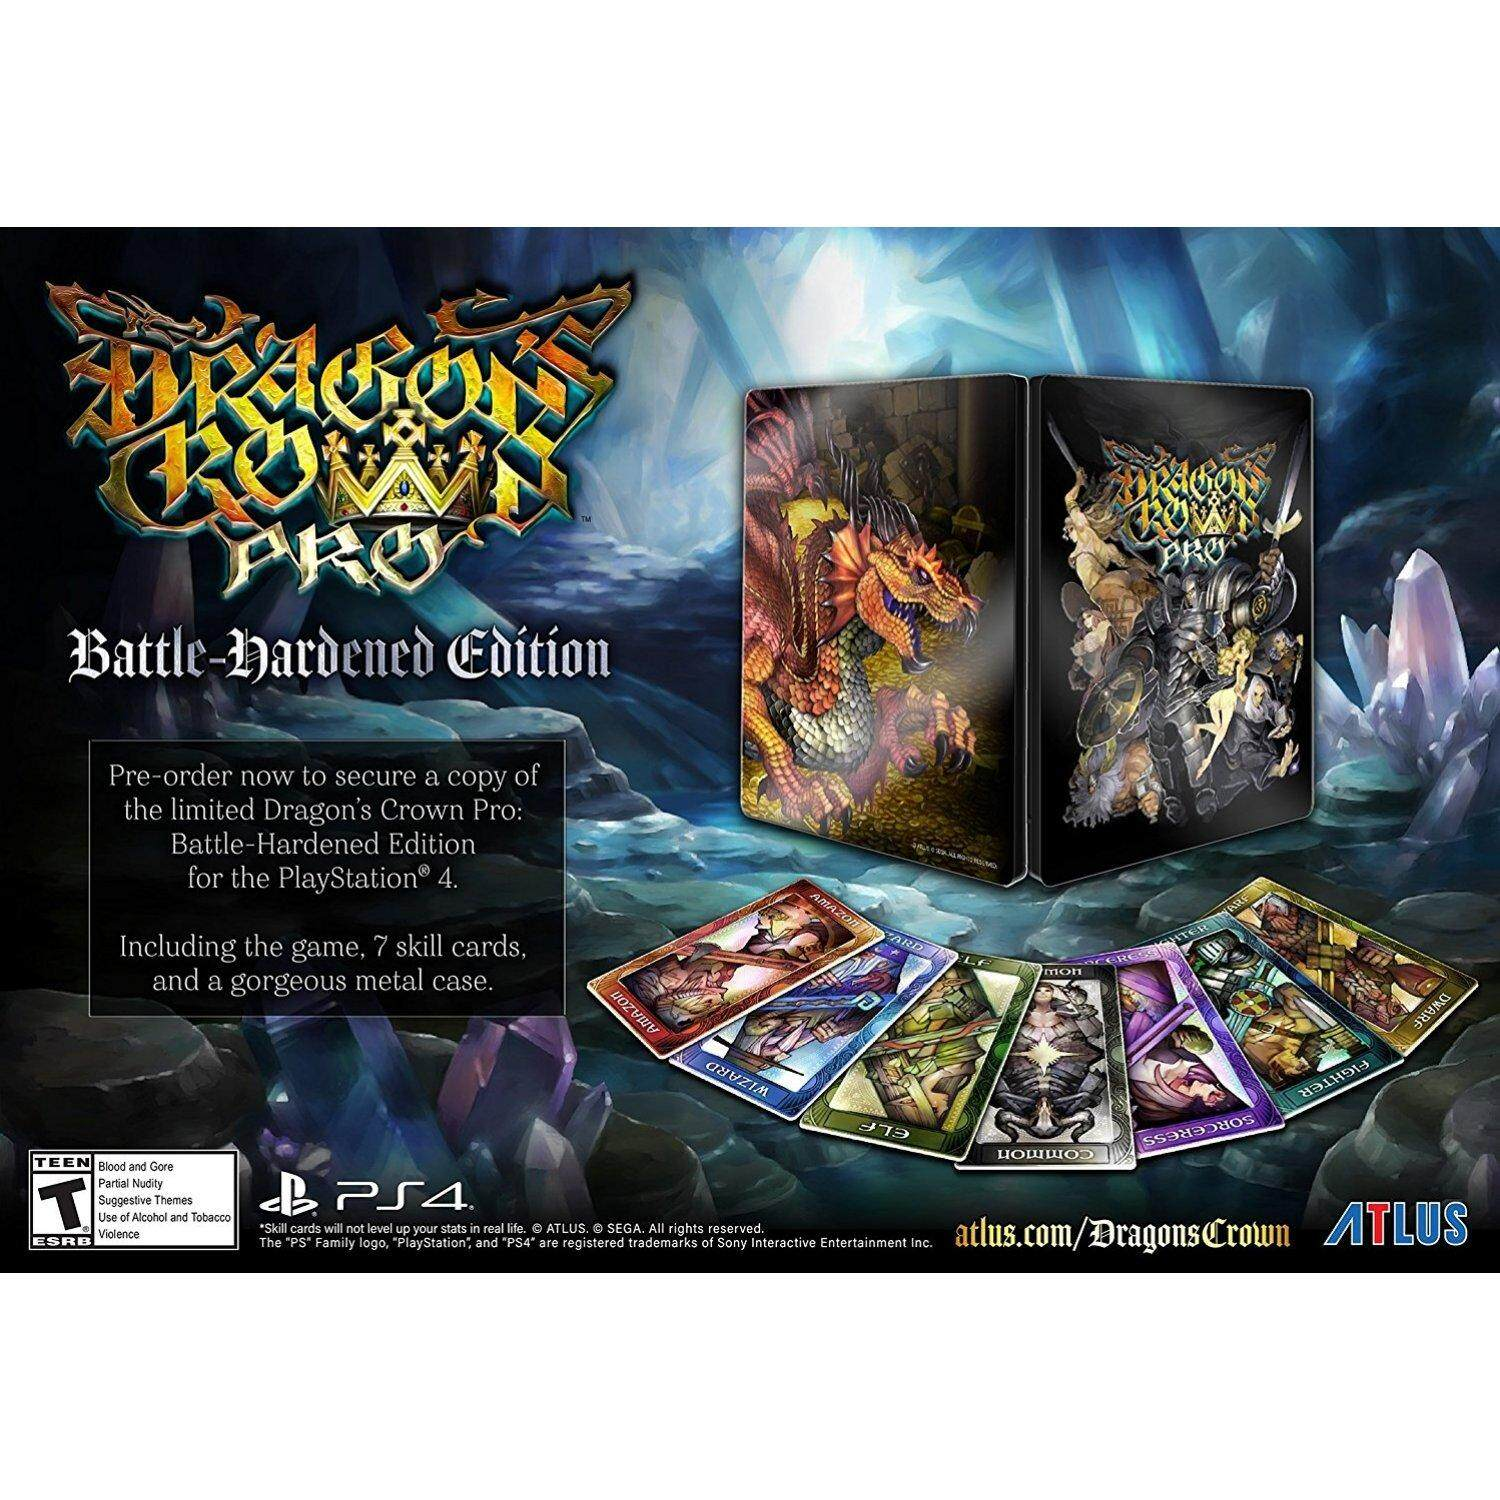 PS4 DRAGON'S CROWN PRO [BATTLE-HARDENED EDITION] (US)